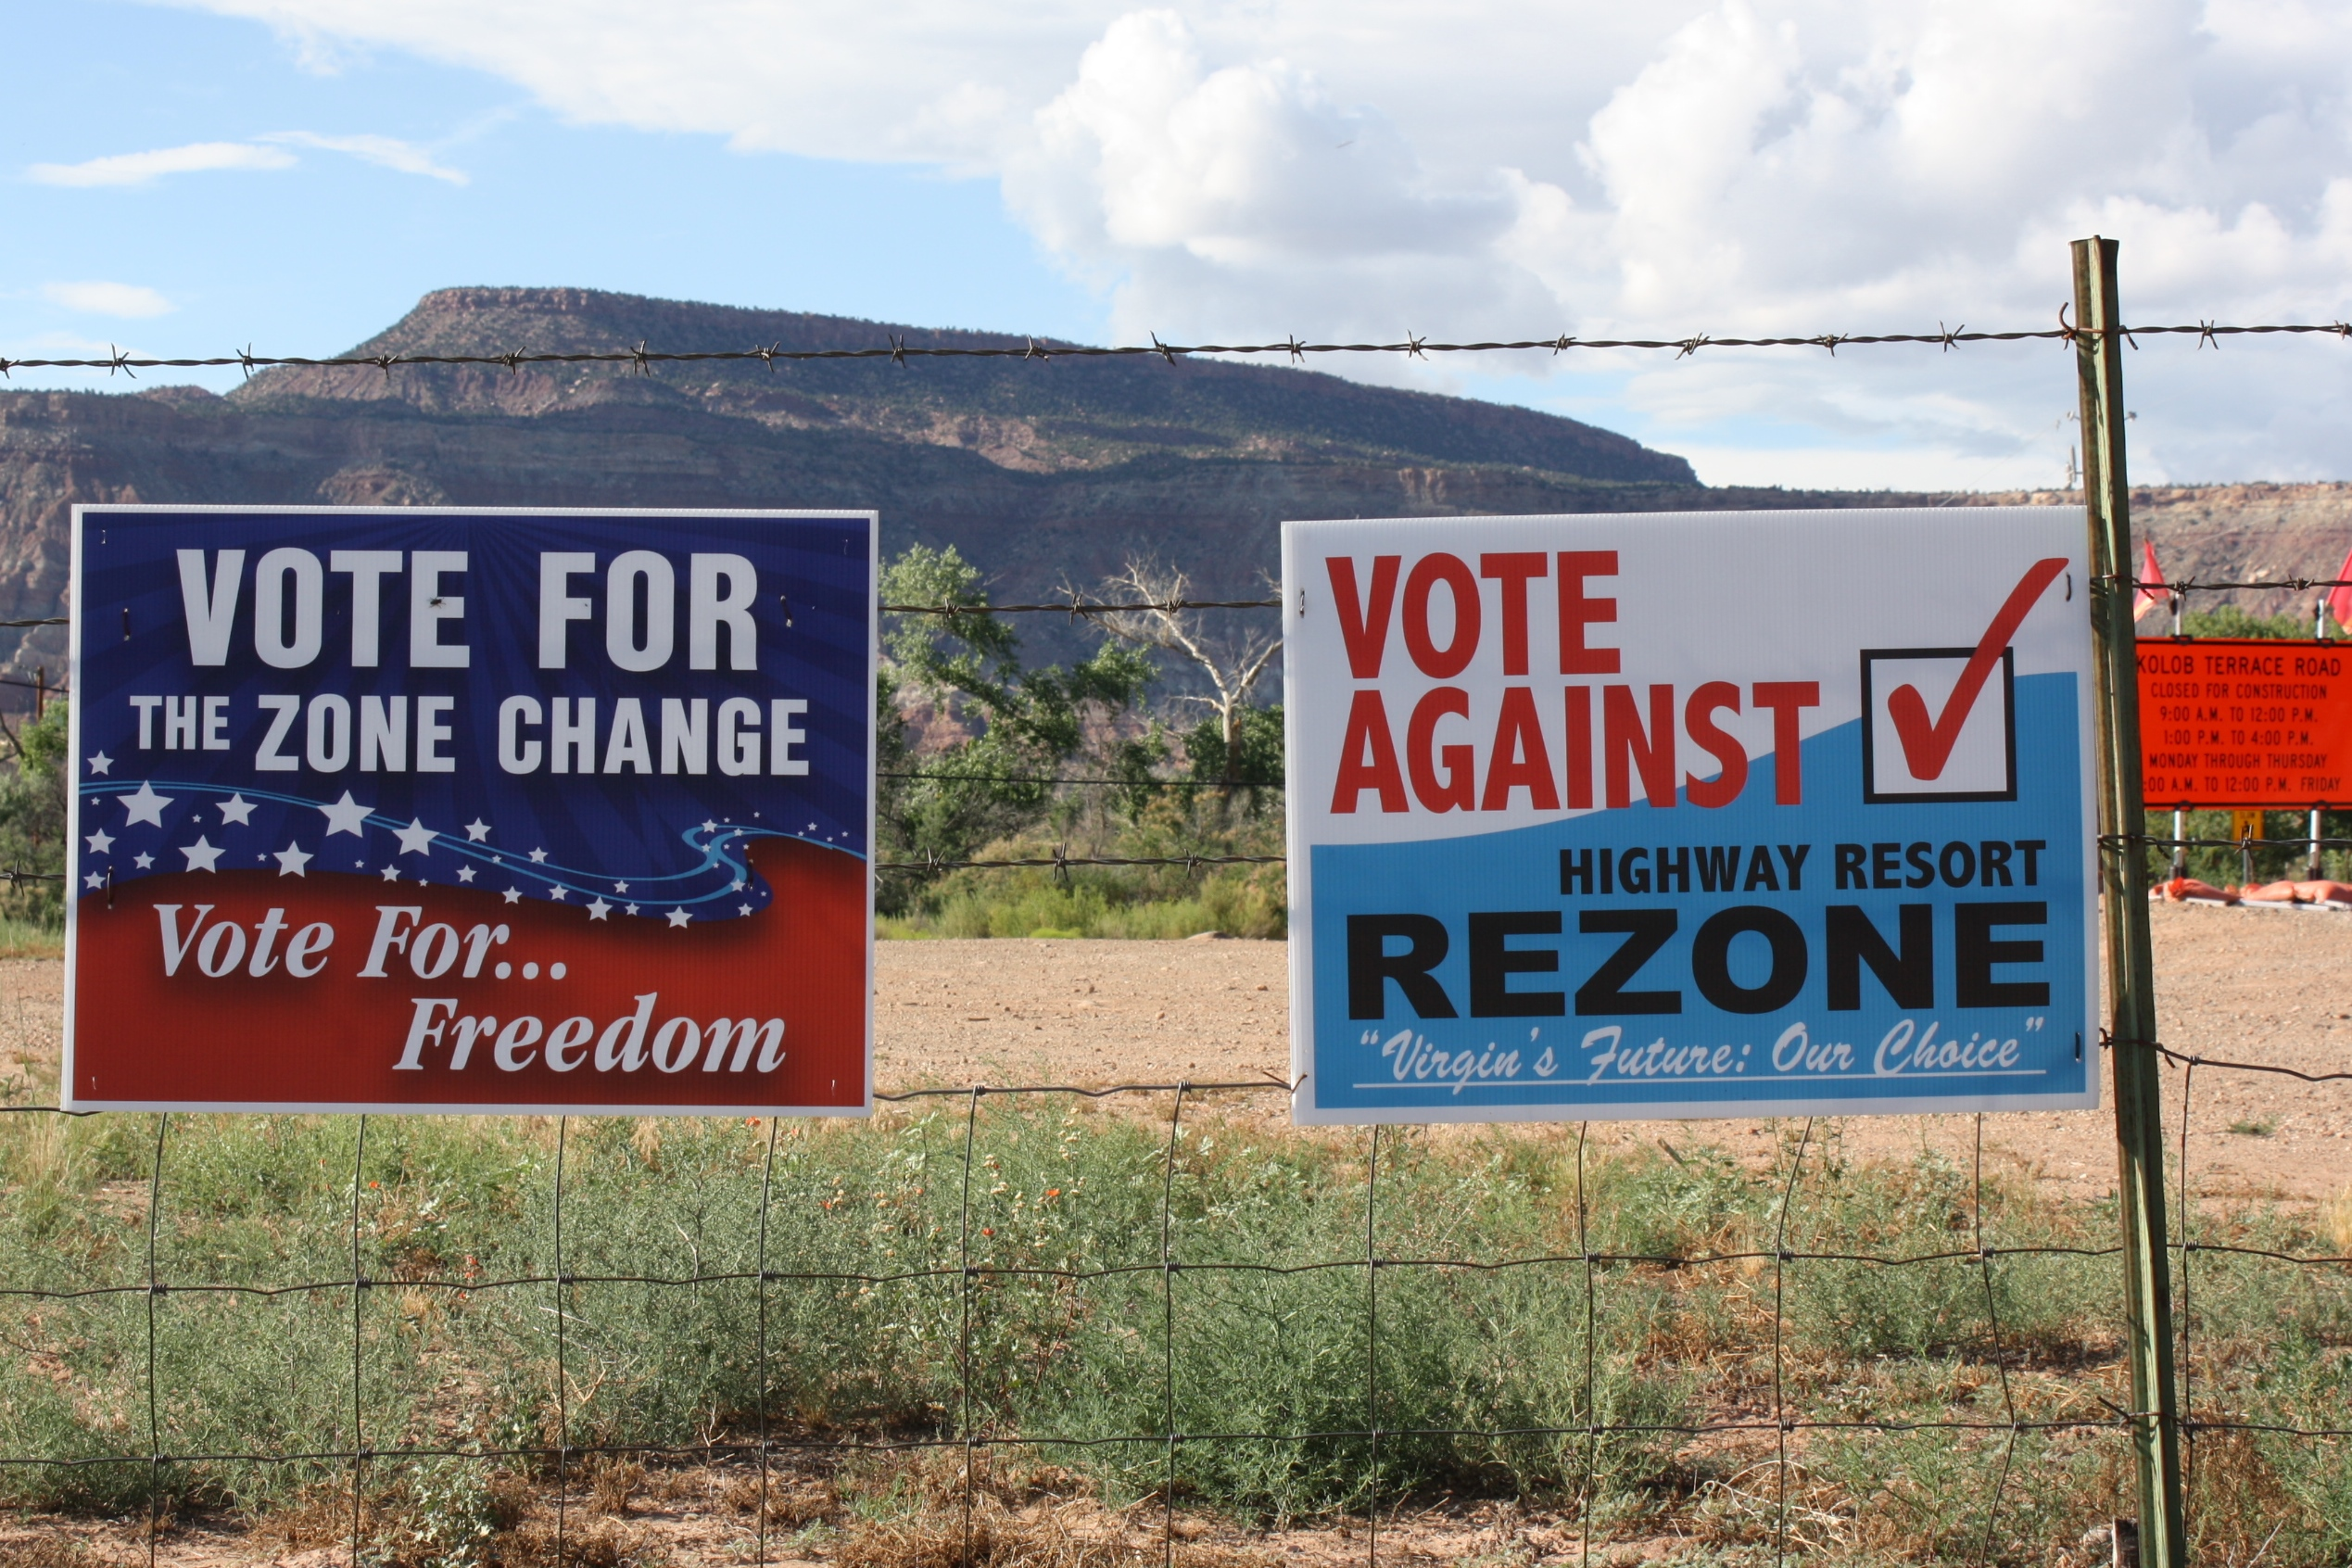 Two referendum signs urging Virgin residents to vote on the June 23 referendum on a fence next to the turnoff of the Kolob Terrace Road, Virgin, Utah,  June 11, 2015 | Reuben Wadsworth, St. George News